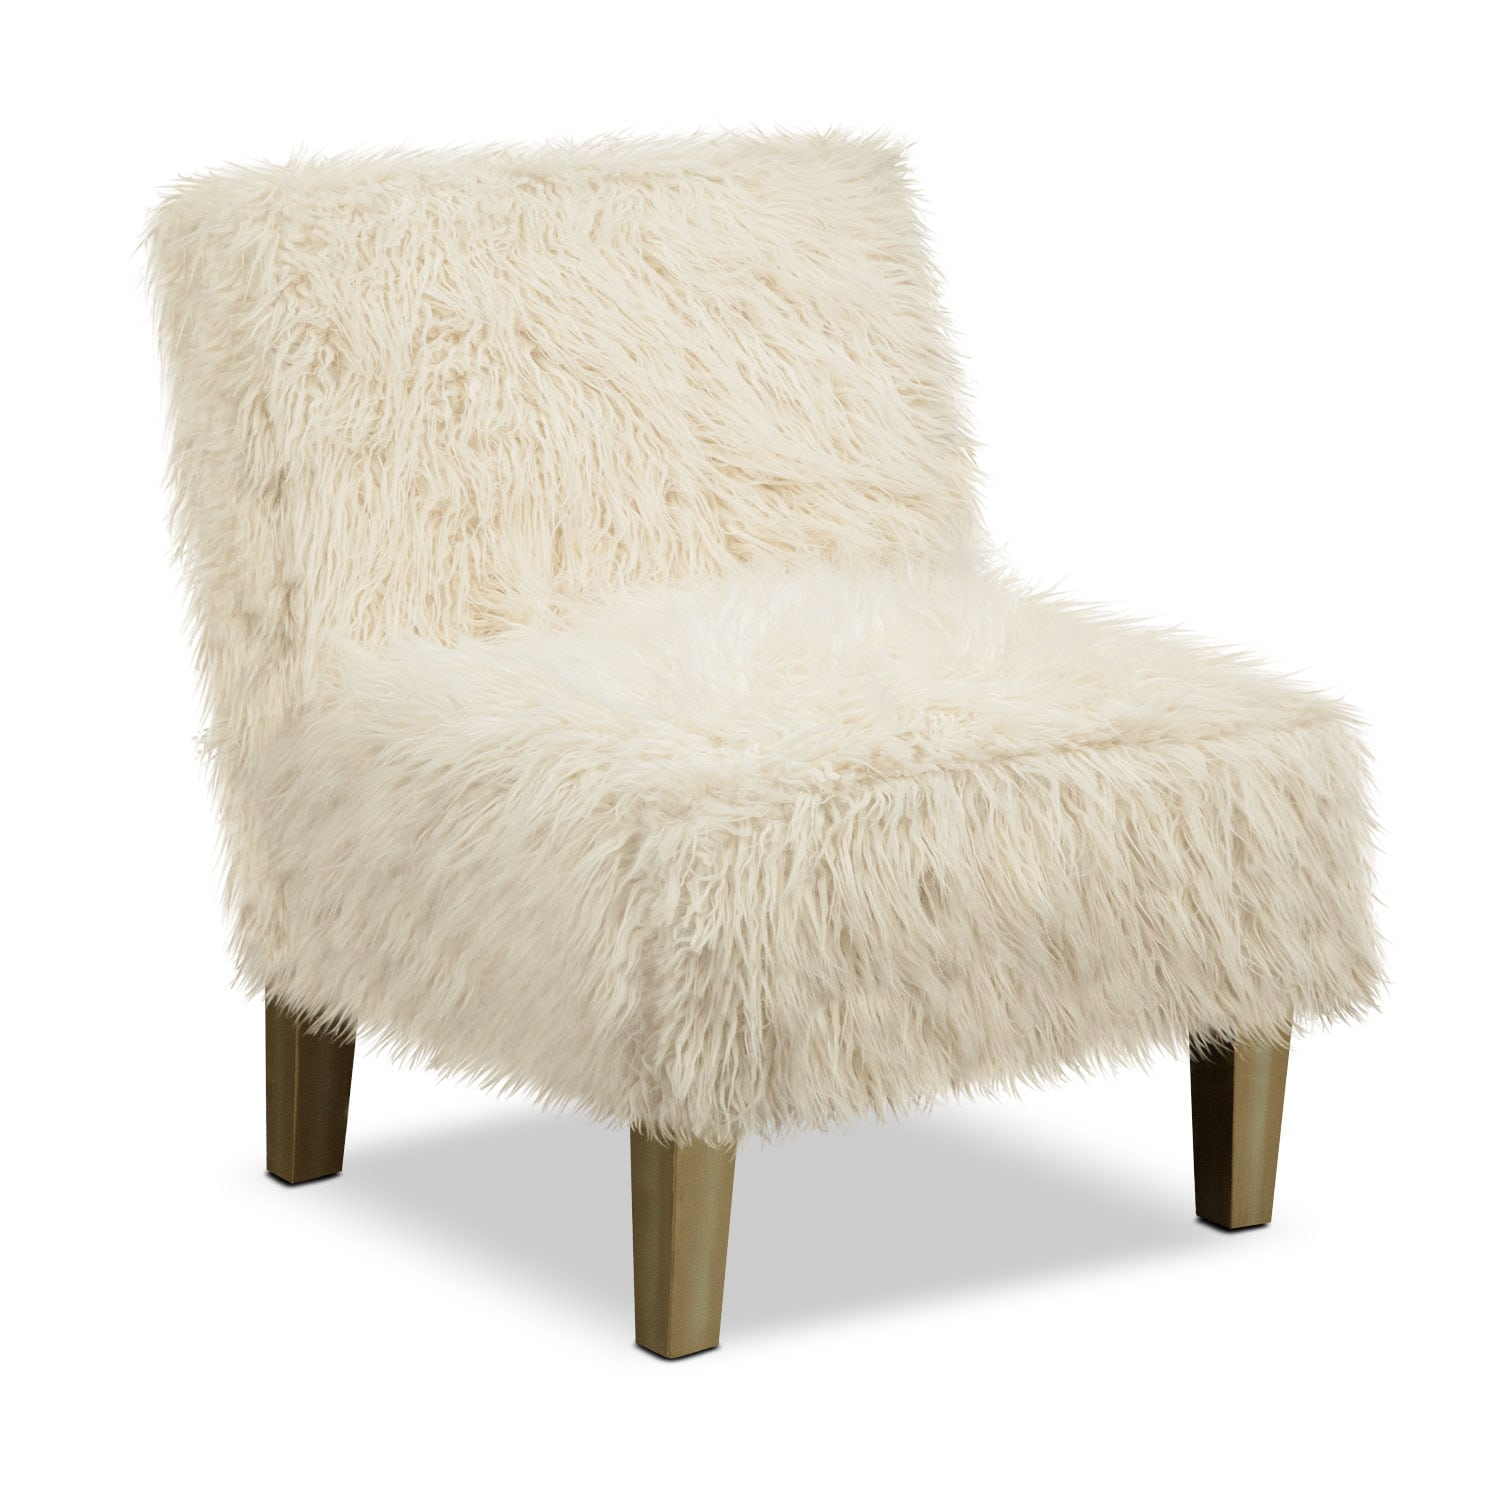 Bedroom Furniture - Westie Accent Chair - White